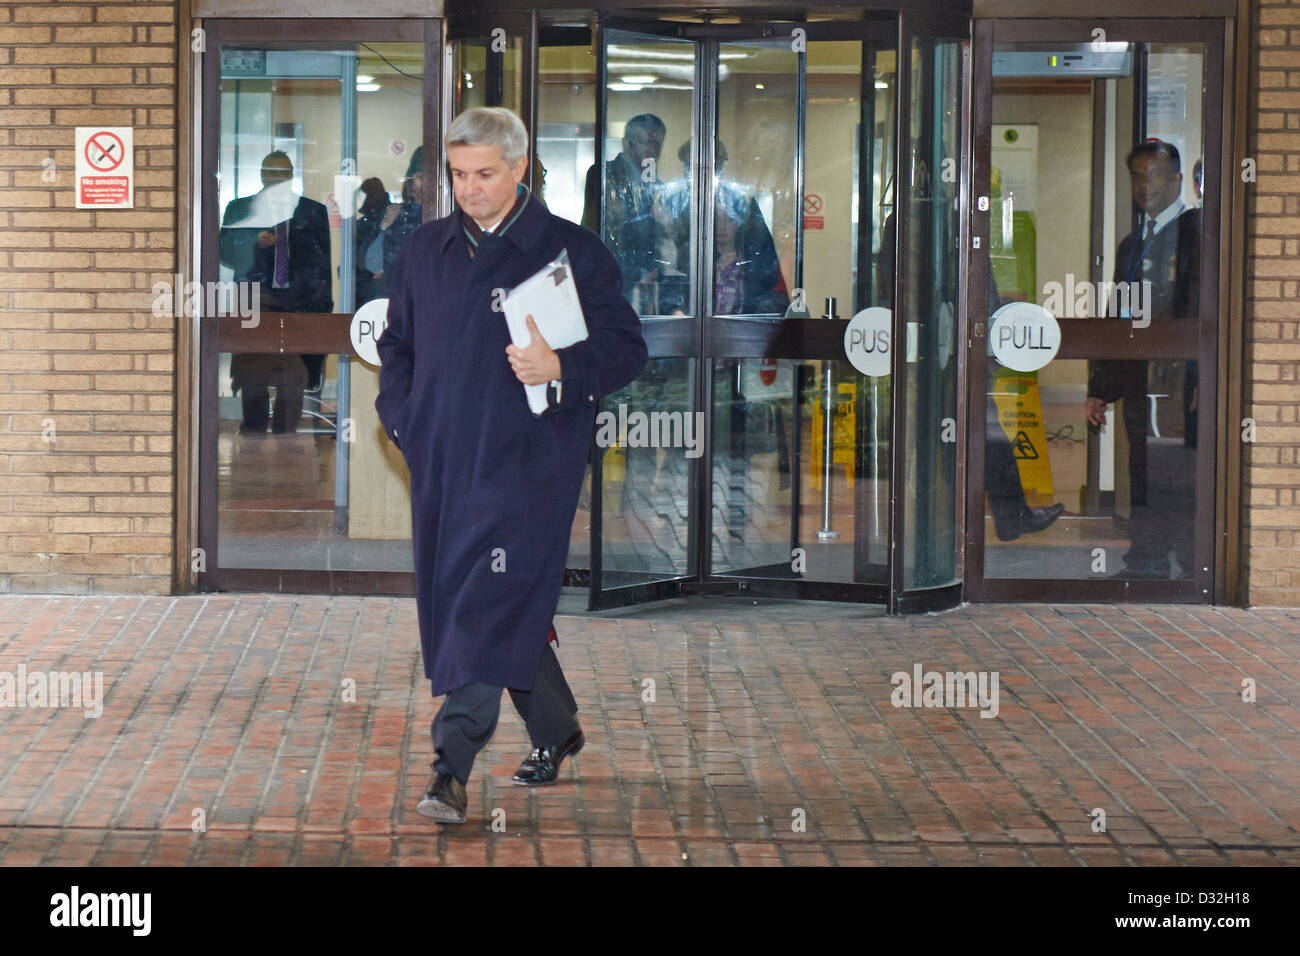 Former MP Chris Huhne (pictured) leaves Southwark Crown Court after pleading not guilty to perverting the course - Stock Image